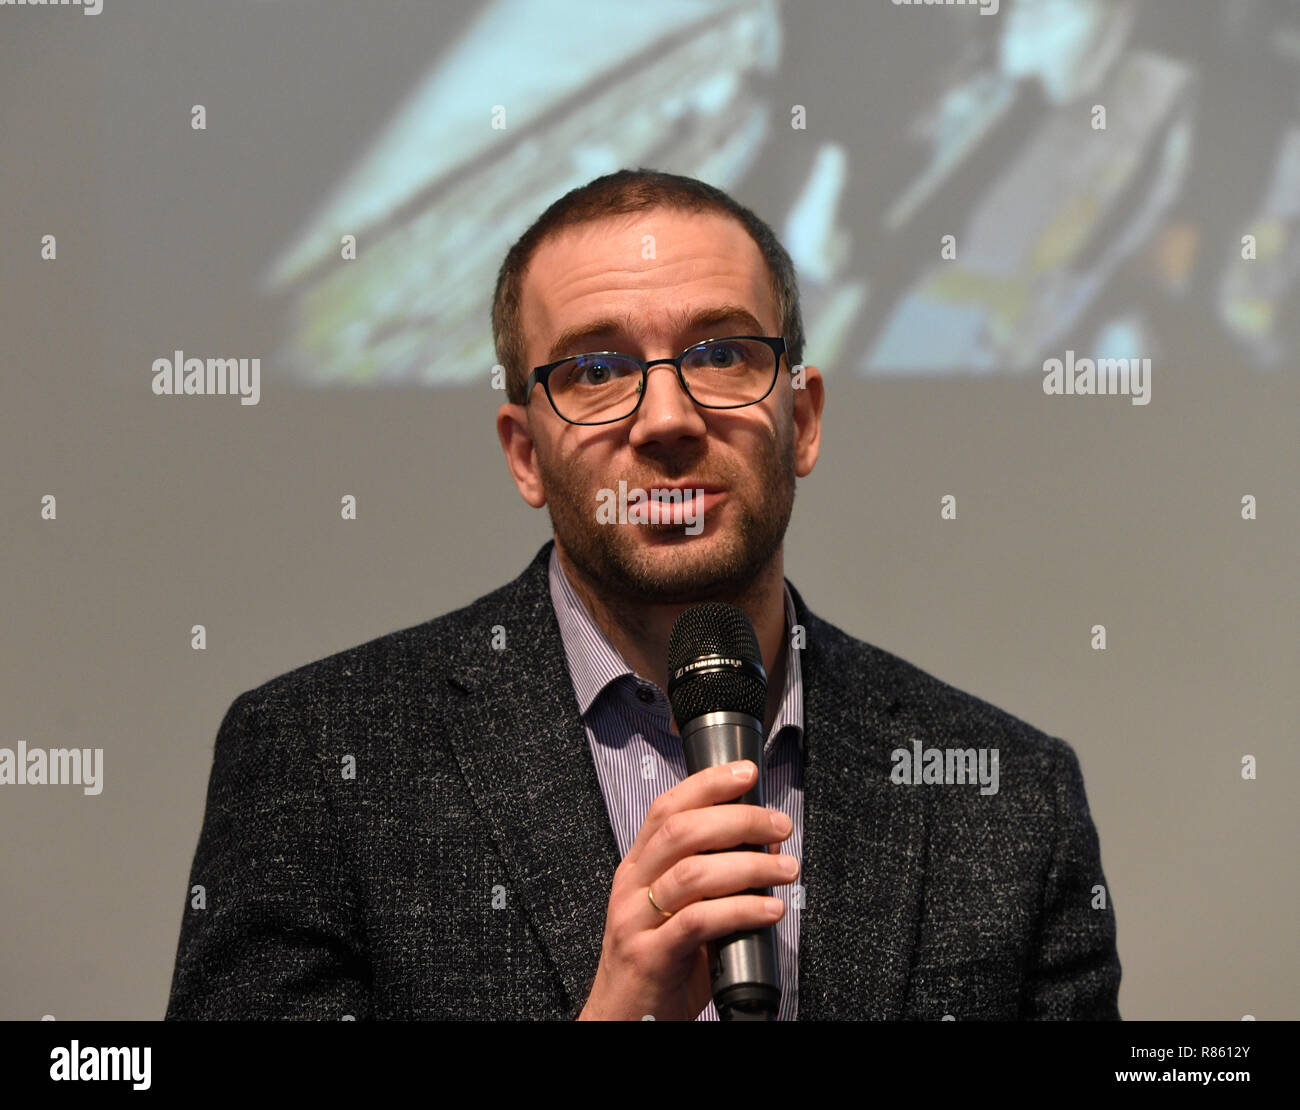 Prague, Czech Republic. 13th Dec, 2018. The results of six months of work of Ukrainian, Czech, Slovak and Polish journalists with declassified documents of KGB and other Soviet and communist services were presented in Prague, Czech Republic, December 13, 2018. The deputy director of the Institute for the Study of Totalitarian Regimes Ondrej Matejka speaks during the session. Credit: Michal Krumphanzl/CTK Photo/Alamy Live News - Stock Image